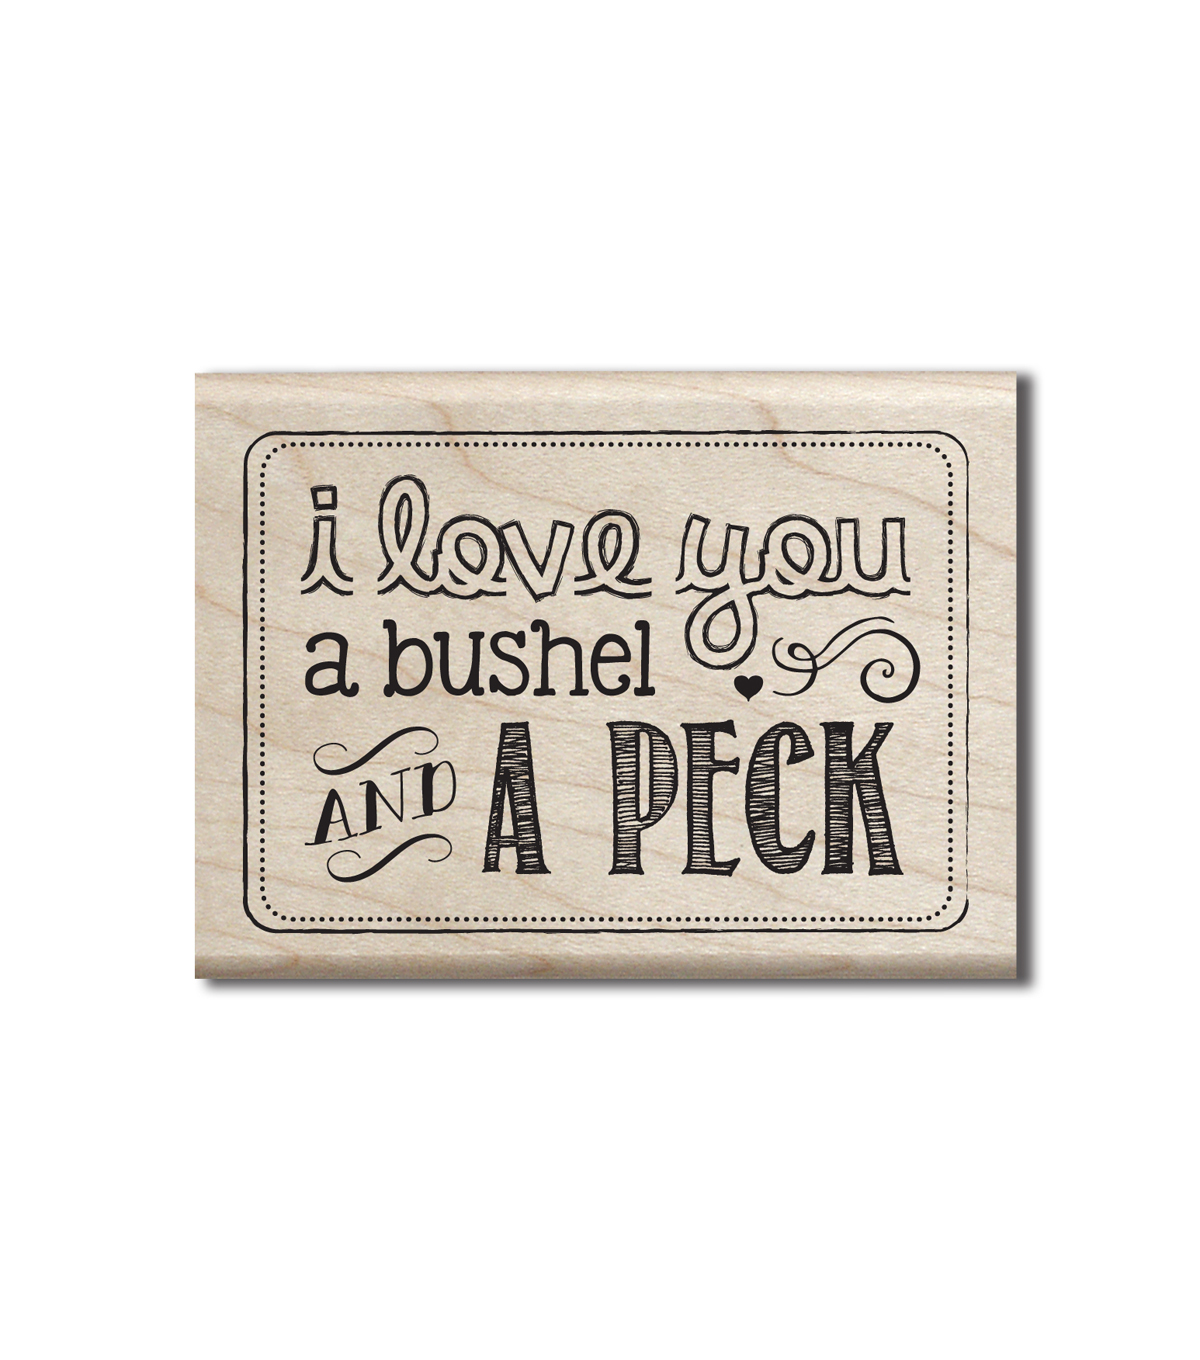 Hampton Art™ Cam & Chloe Mounted Stamp-Bushel & Peck